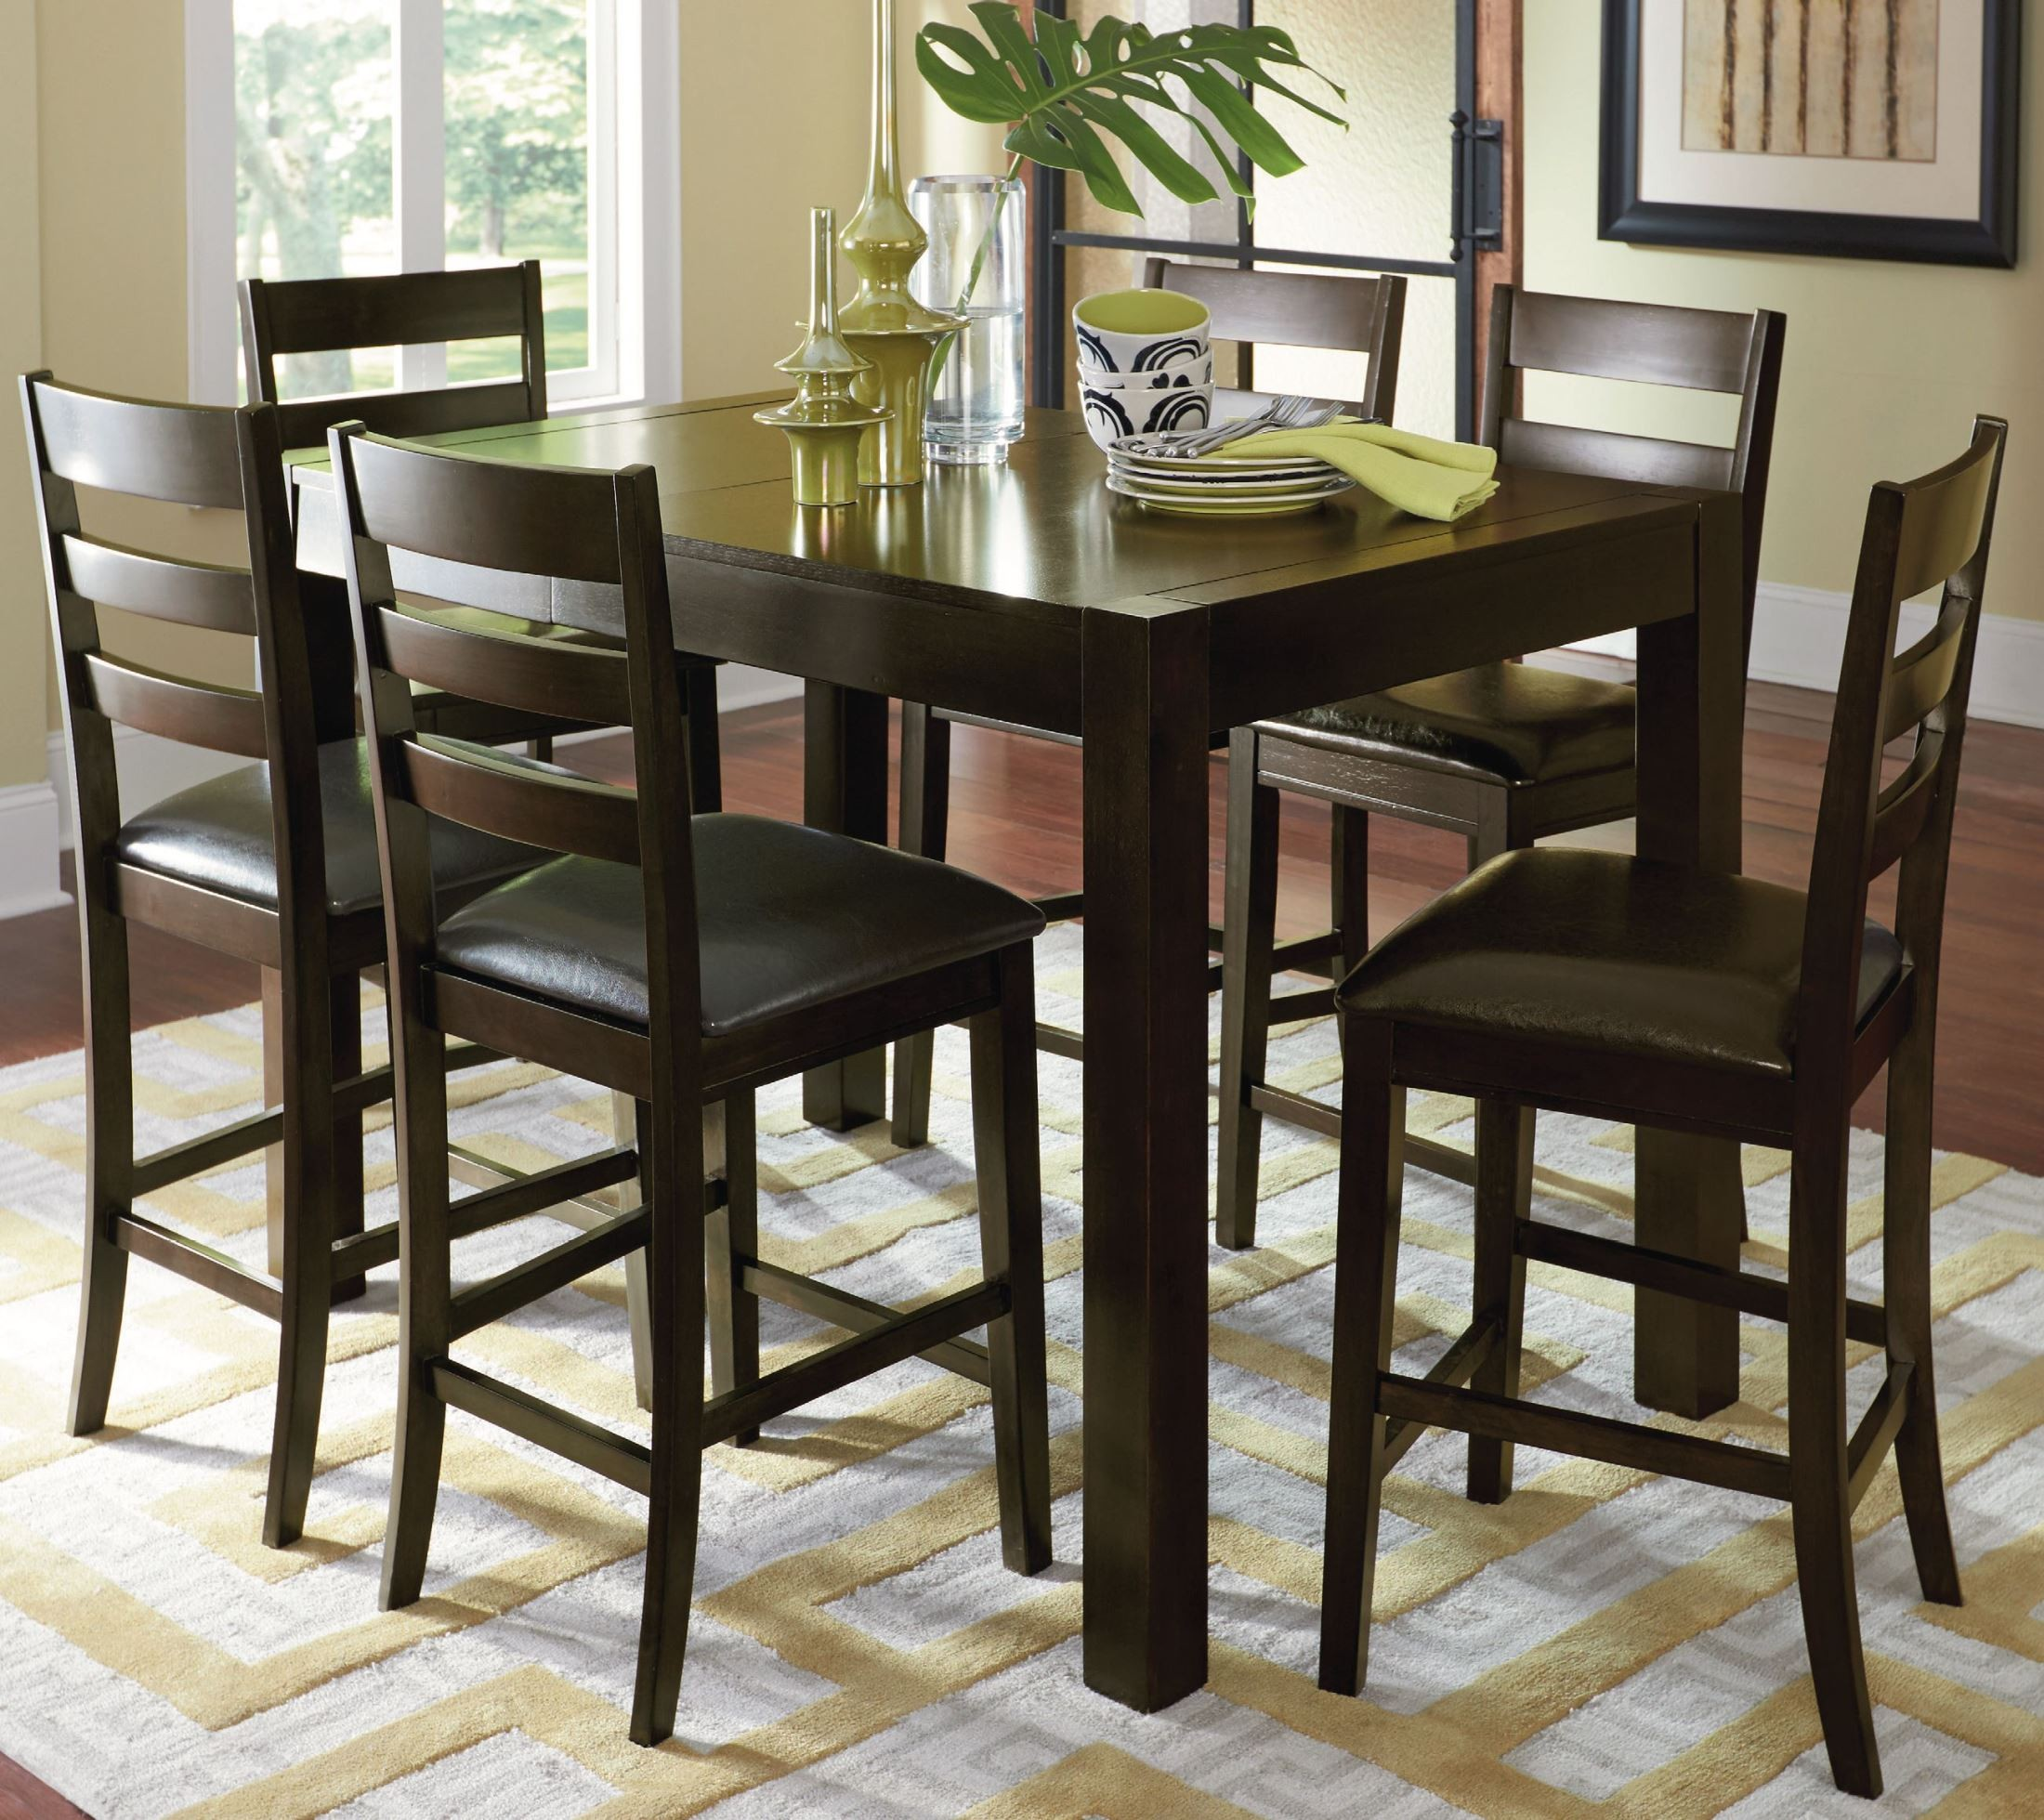 amini espresso butterfly counter height dining room set p868 12